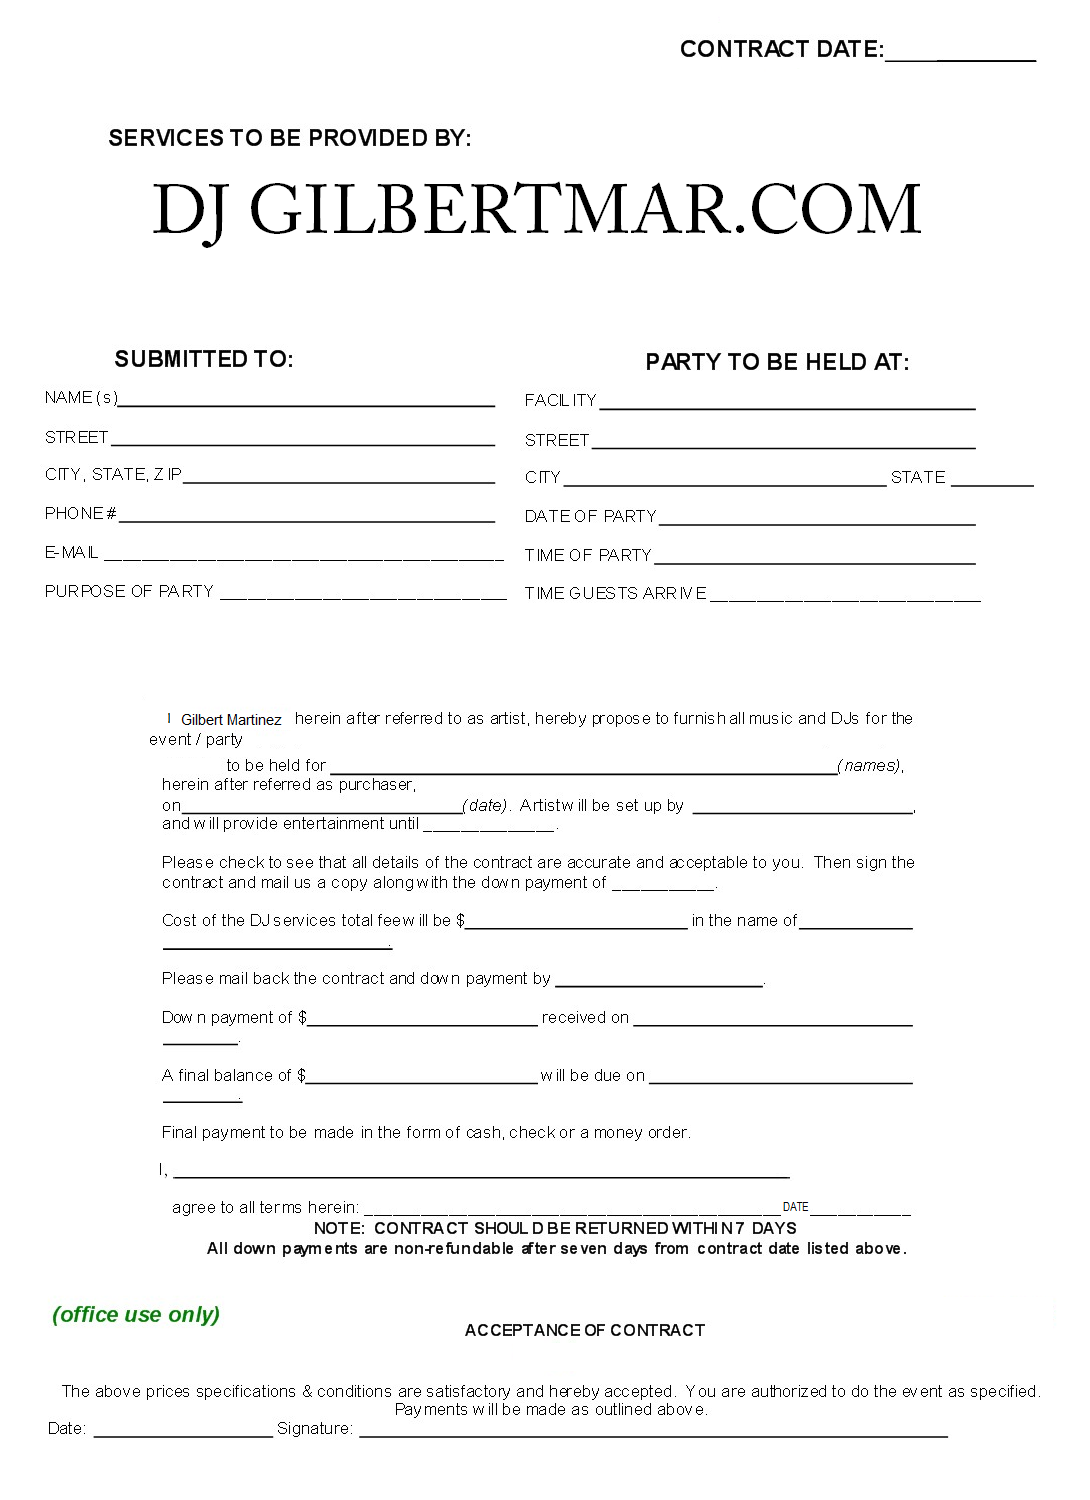 Dj Contract Template Non Compete Agreement Dj Contract Legal